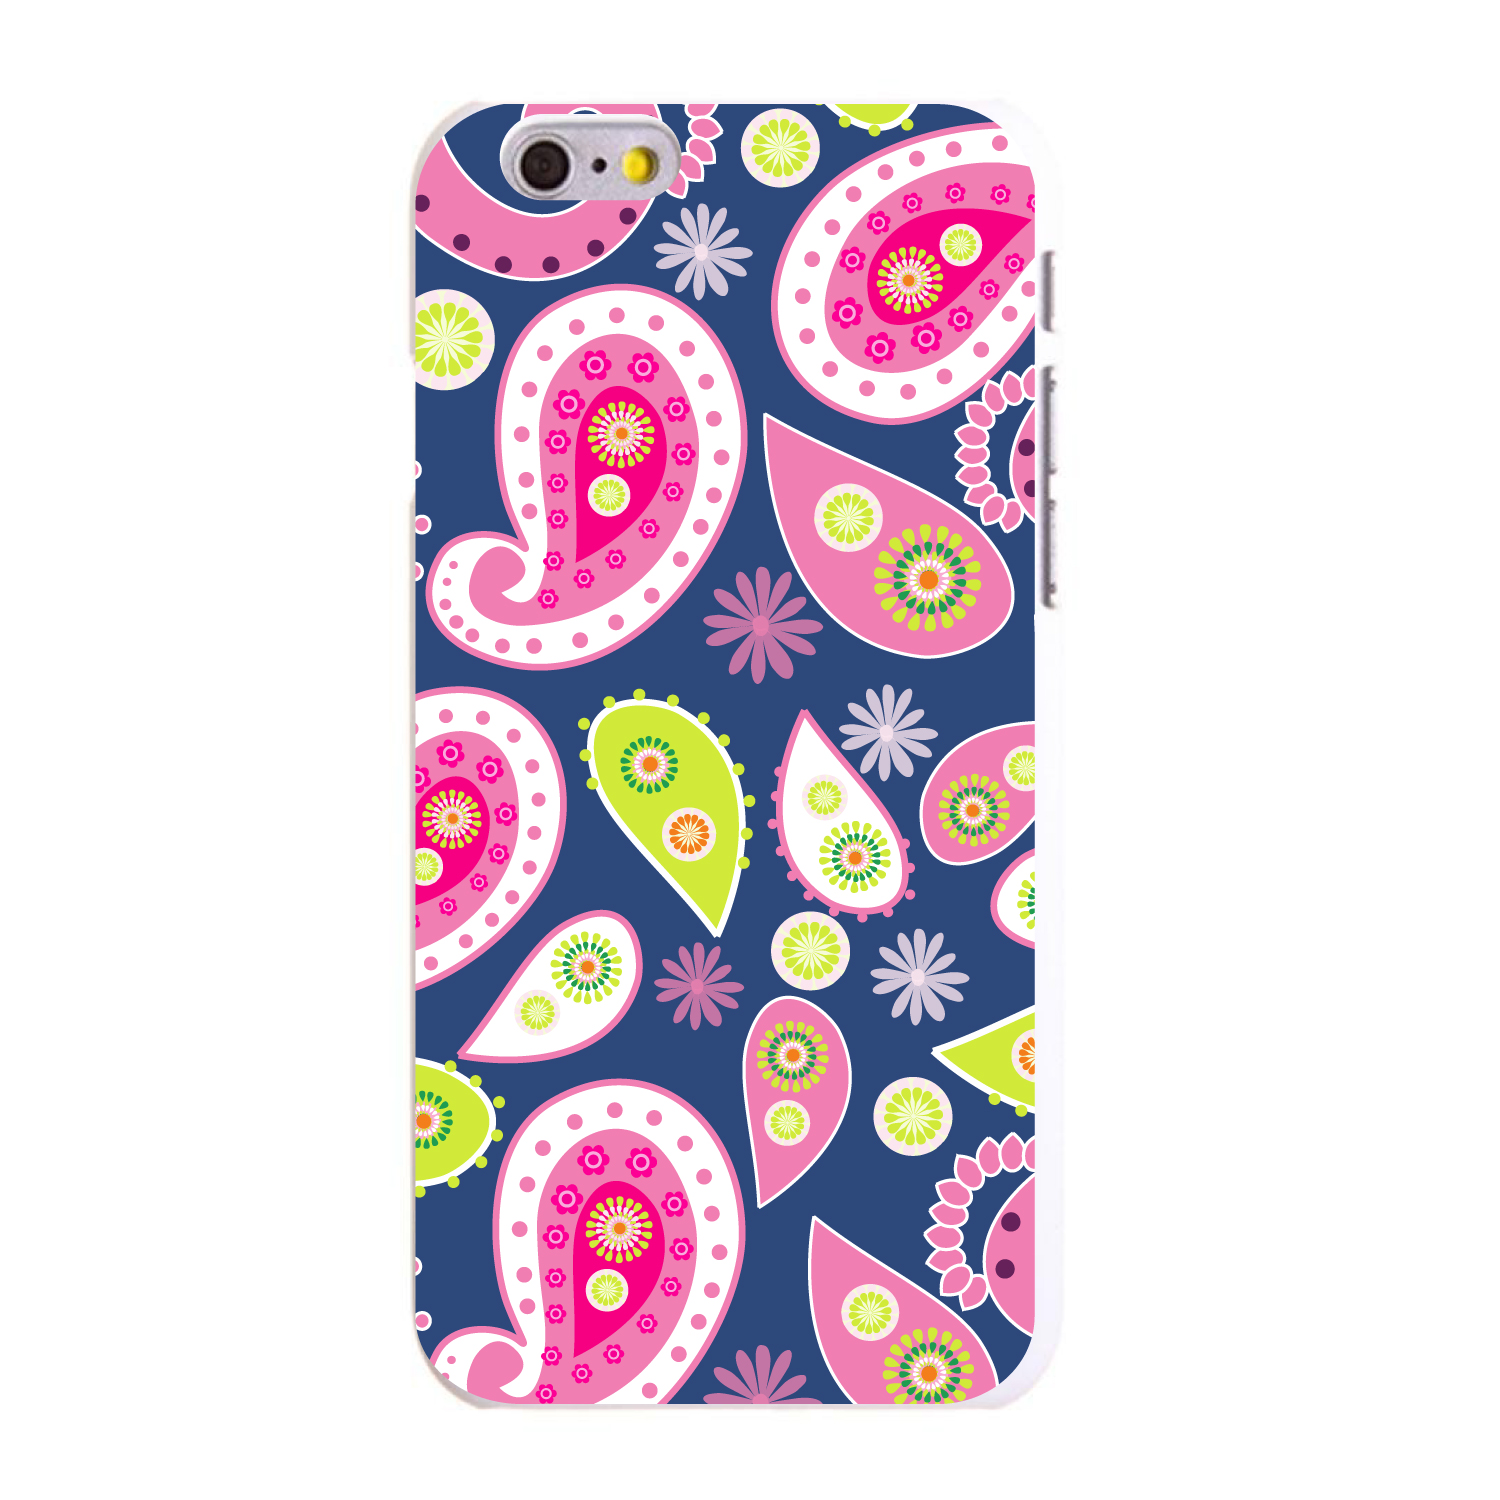 """CUSTOM White Hard Plastic Snap-On Case for Apple iPhone 6 PLUS / 6S PLUS (5.5"""" Screen) - Pink Green Navy Paisley"""